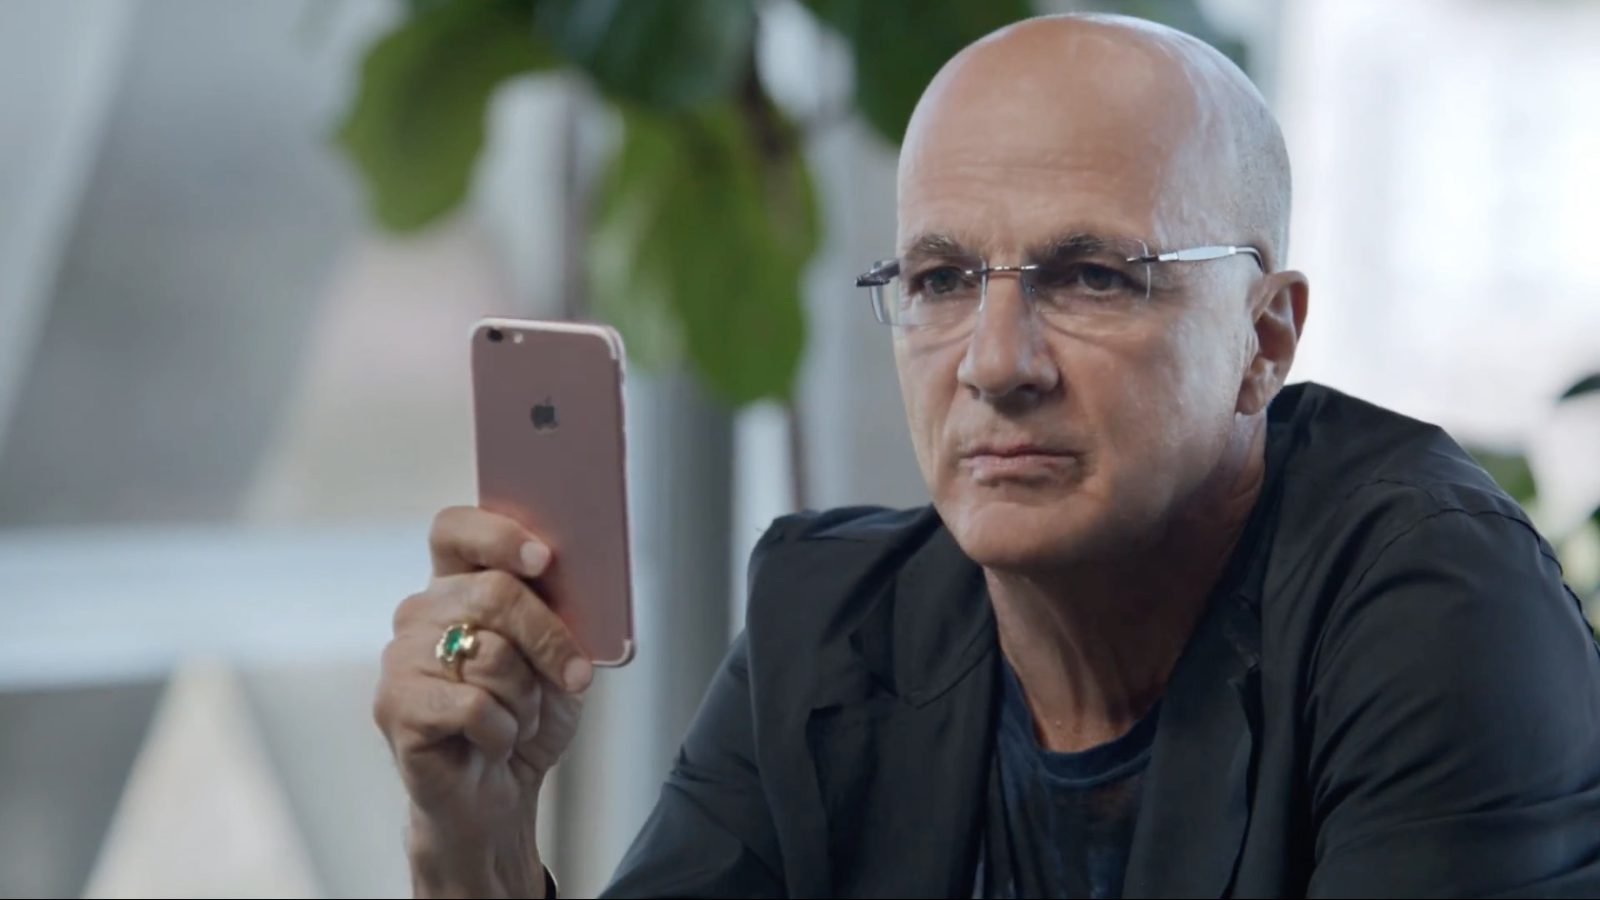 Apple dirà presto addio a Jimmy Iovine?